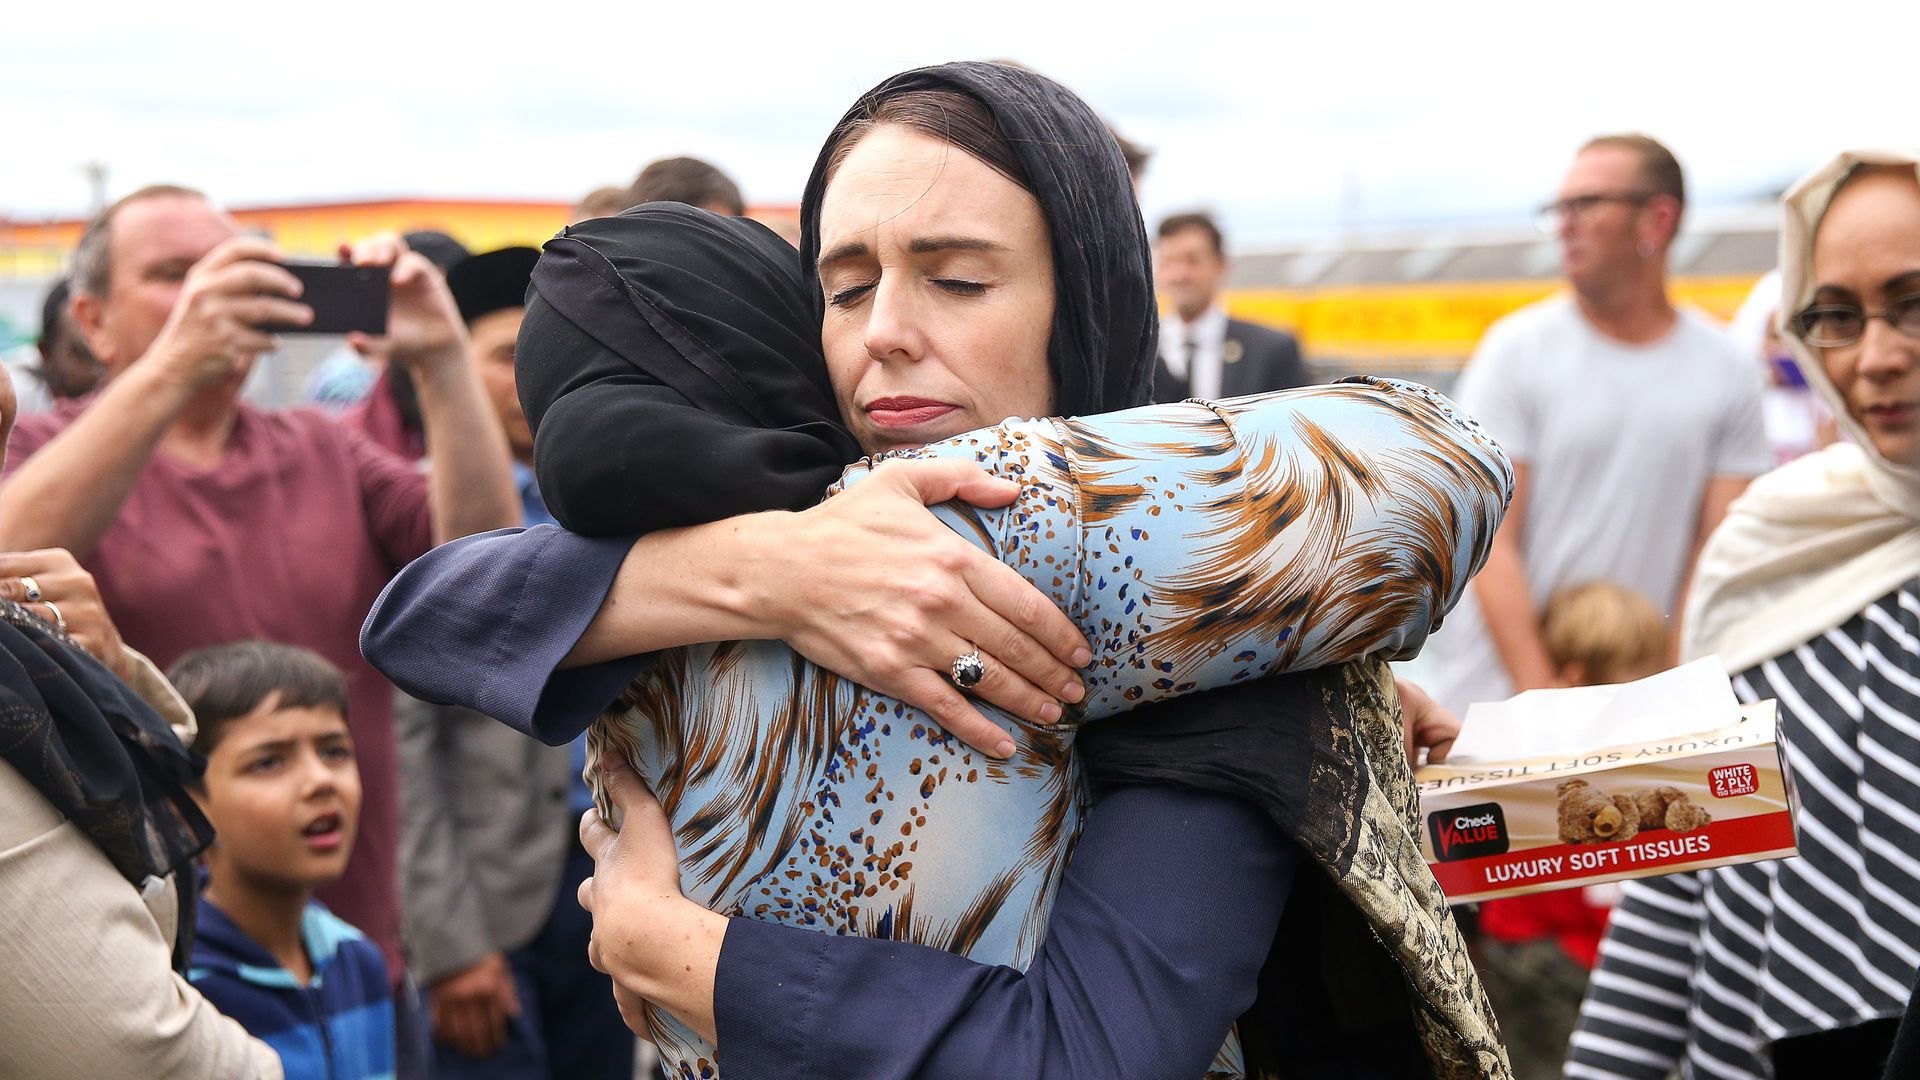 Prime Minister Jacinda Ardern hugs a woman at Kilbirnie Mosque in Wellington, New Zealand, Sunday.